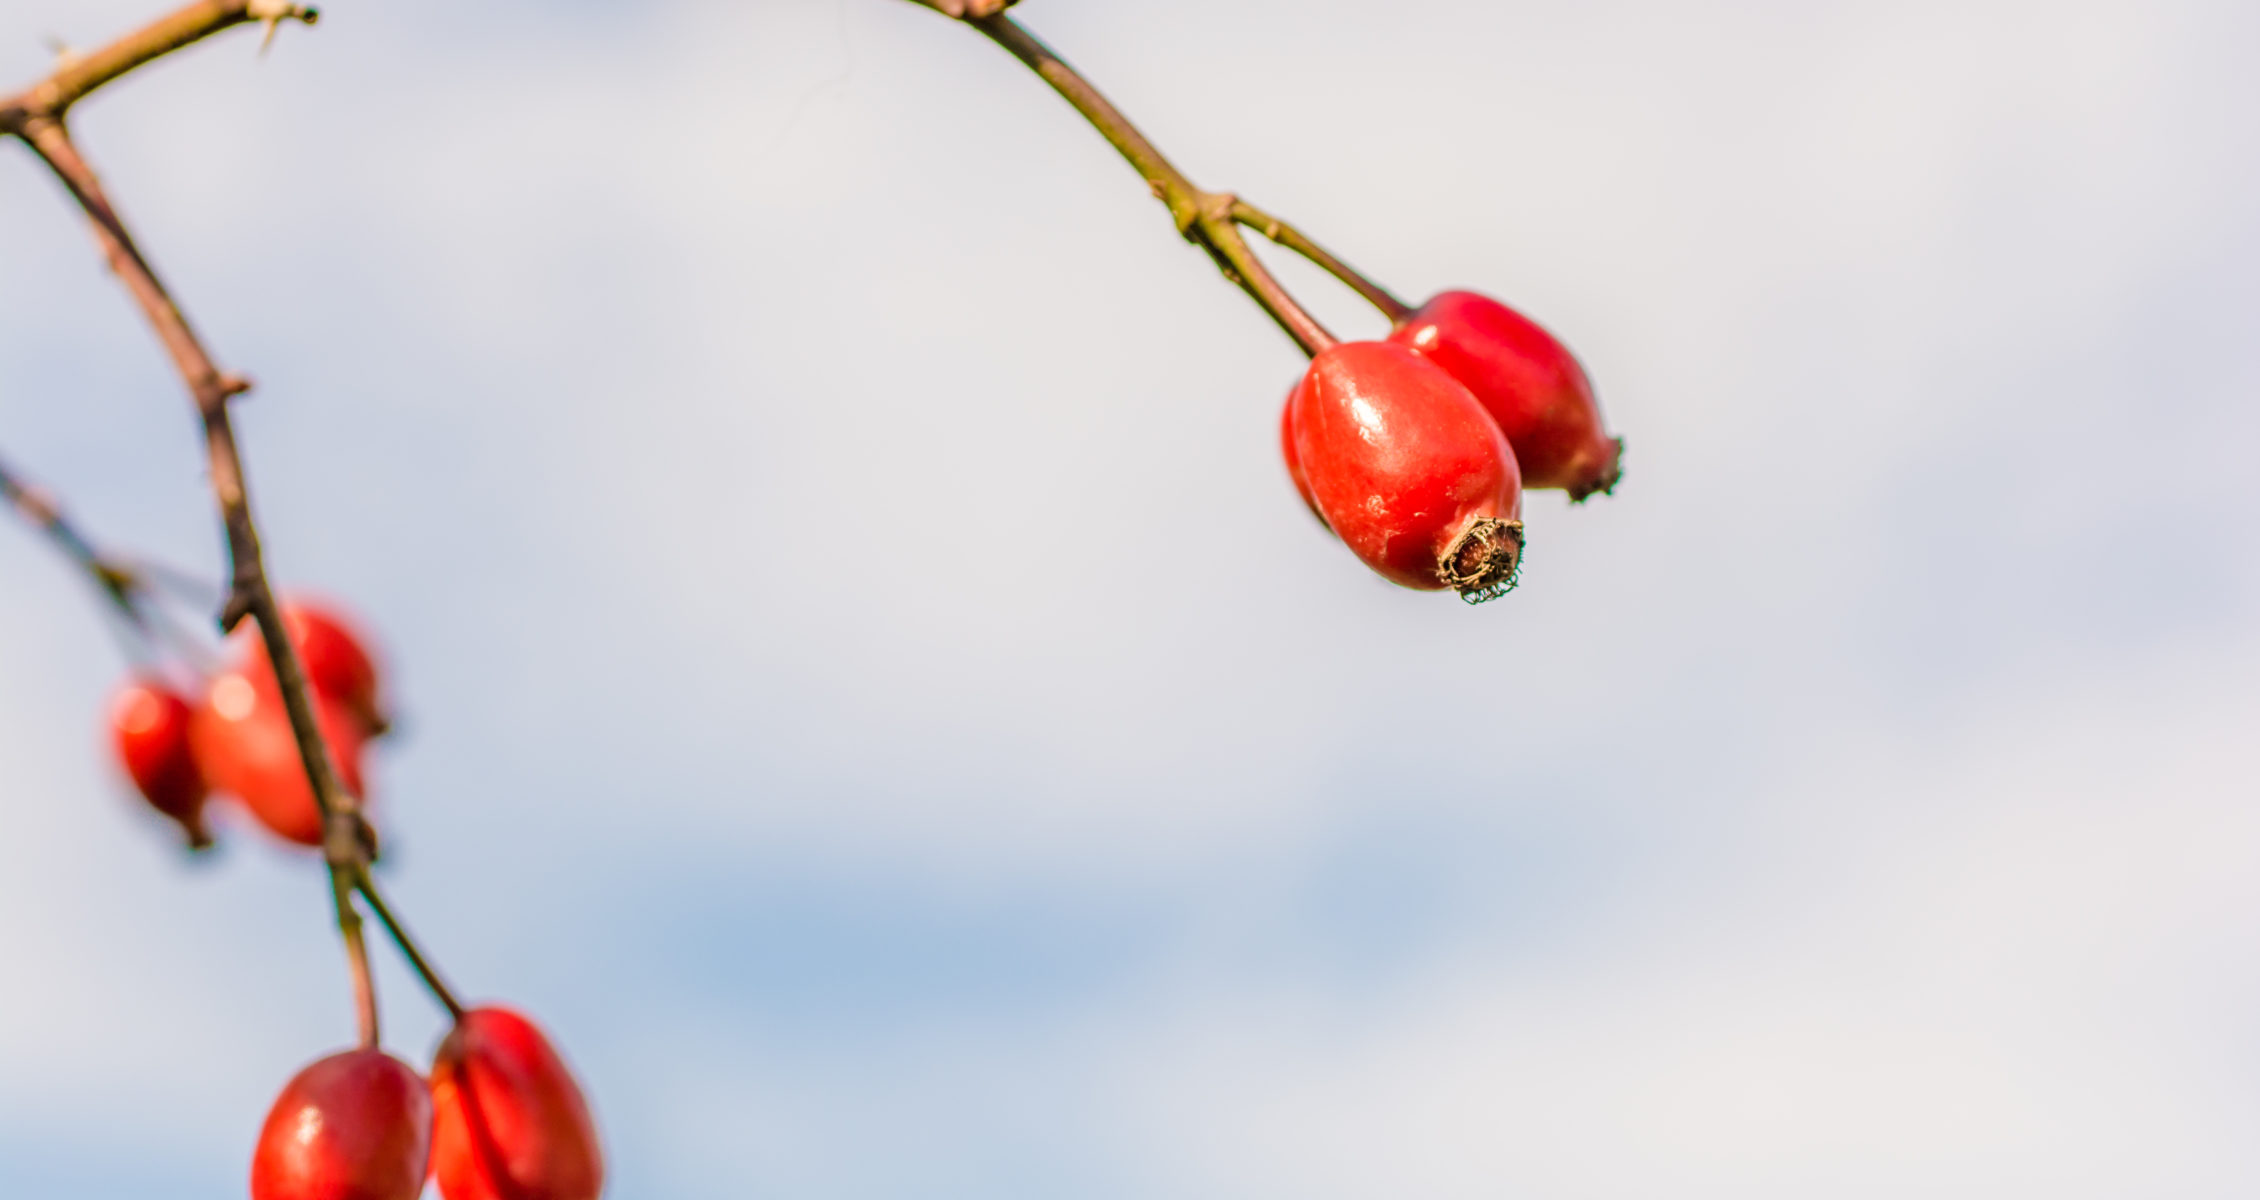 Dog rose fruit with blue sky in background